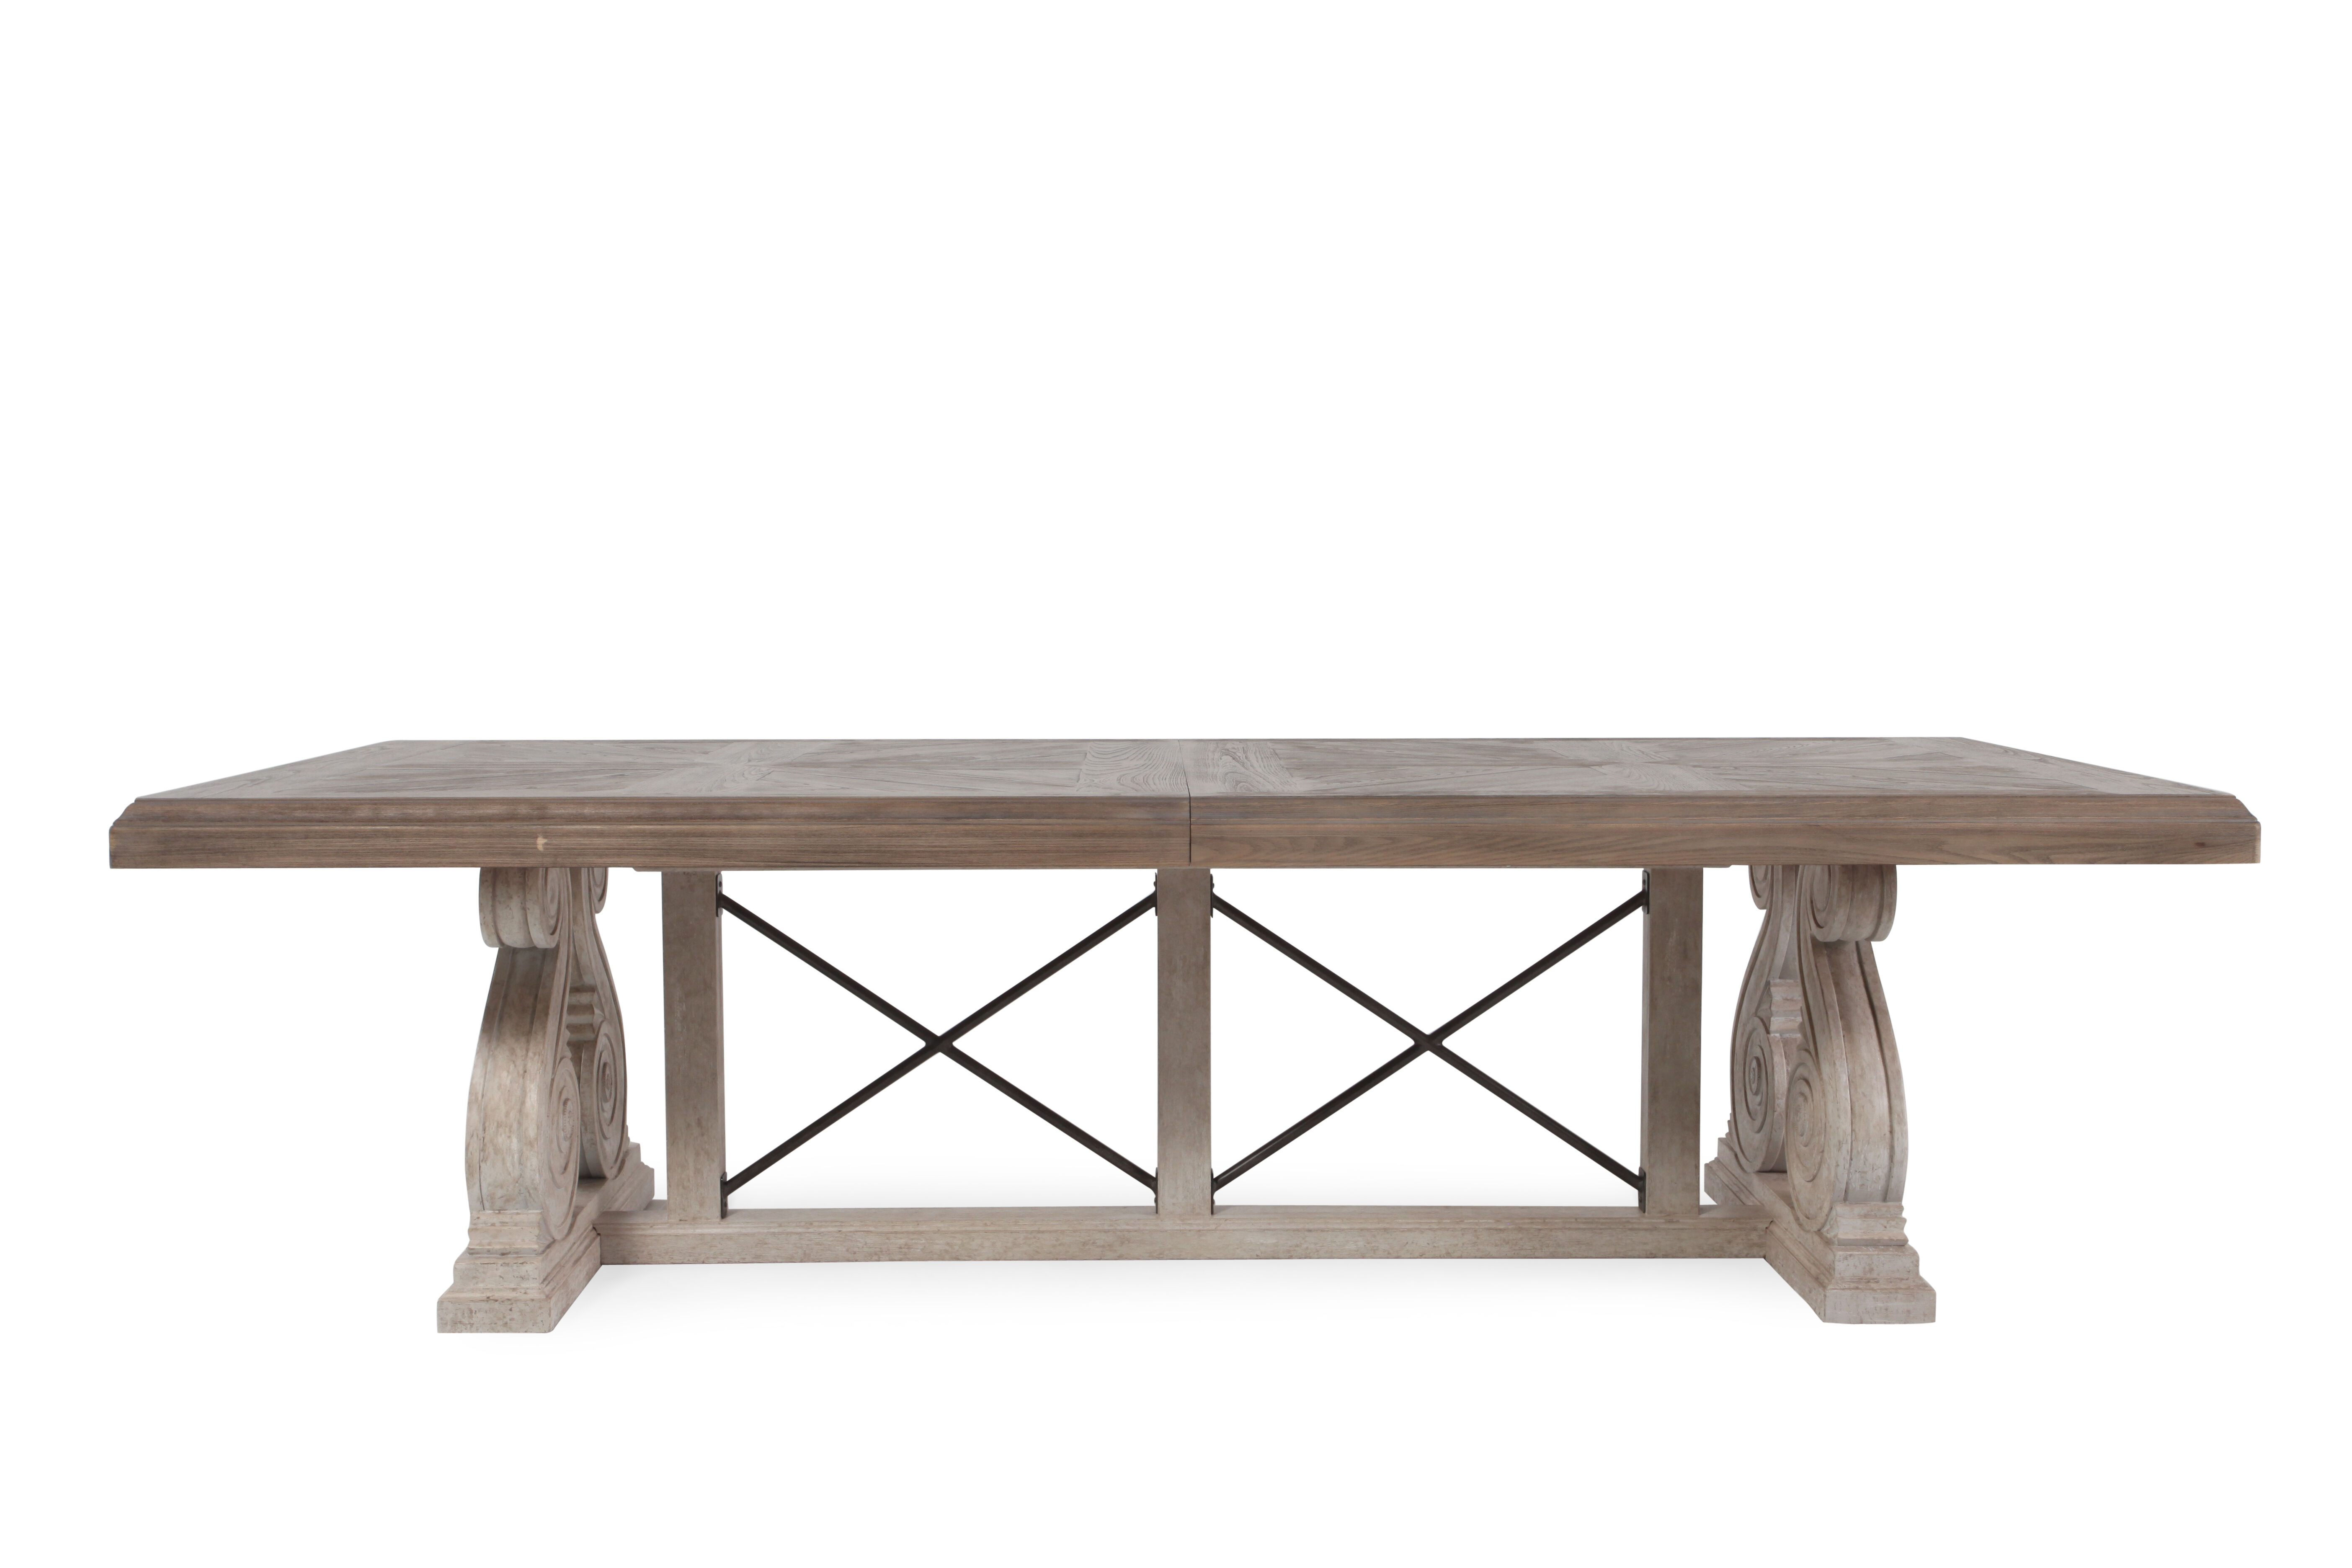 Images Traditional 46u0026quot; X Motif Dining Table In Light Oak Traditional  46u0026quot; X Motif Dining Table In Light Oak